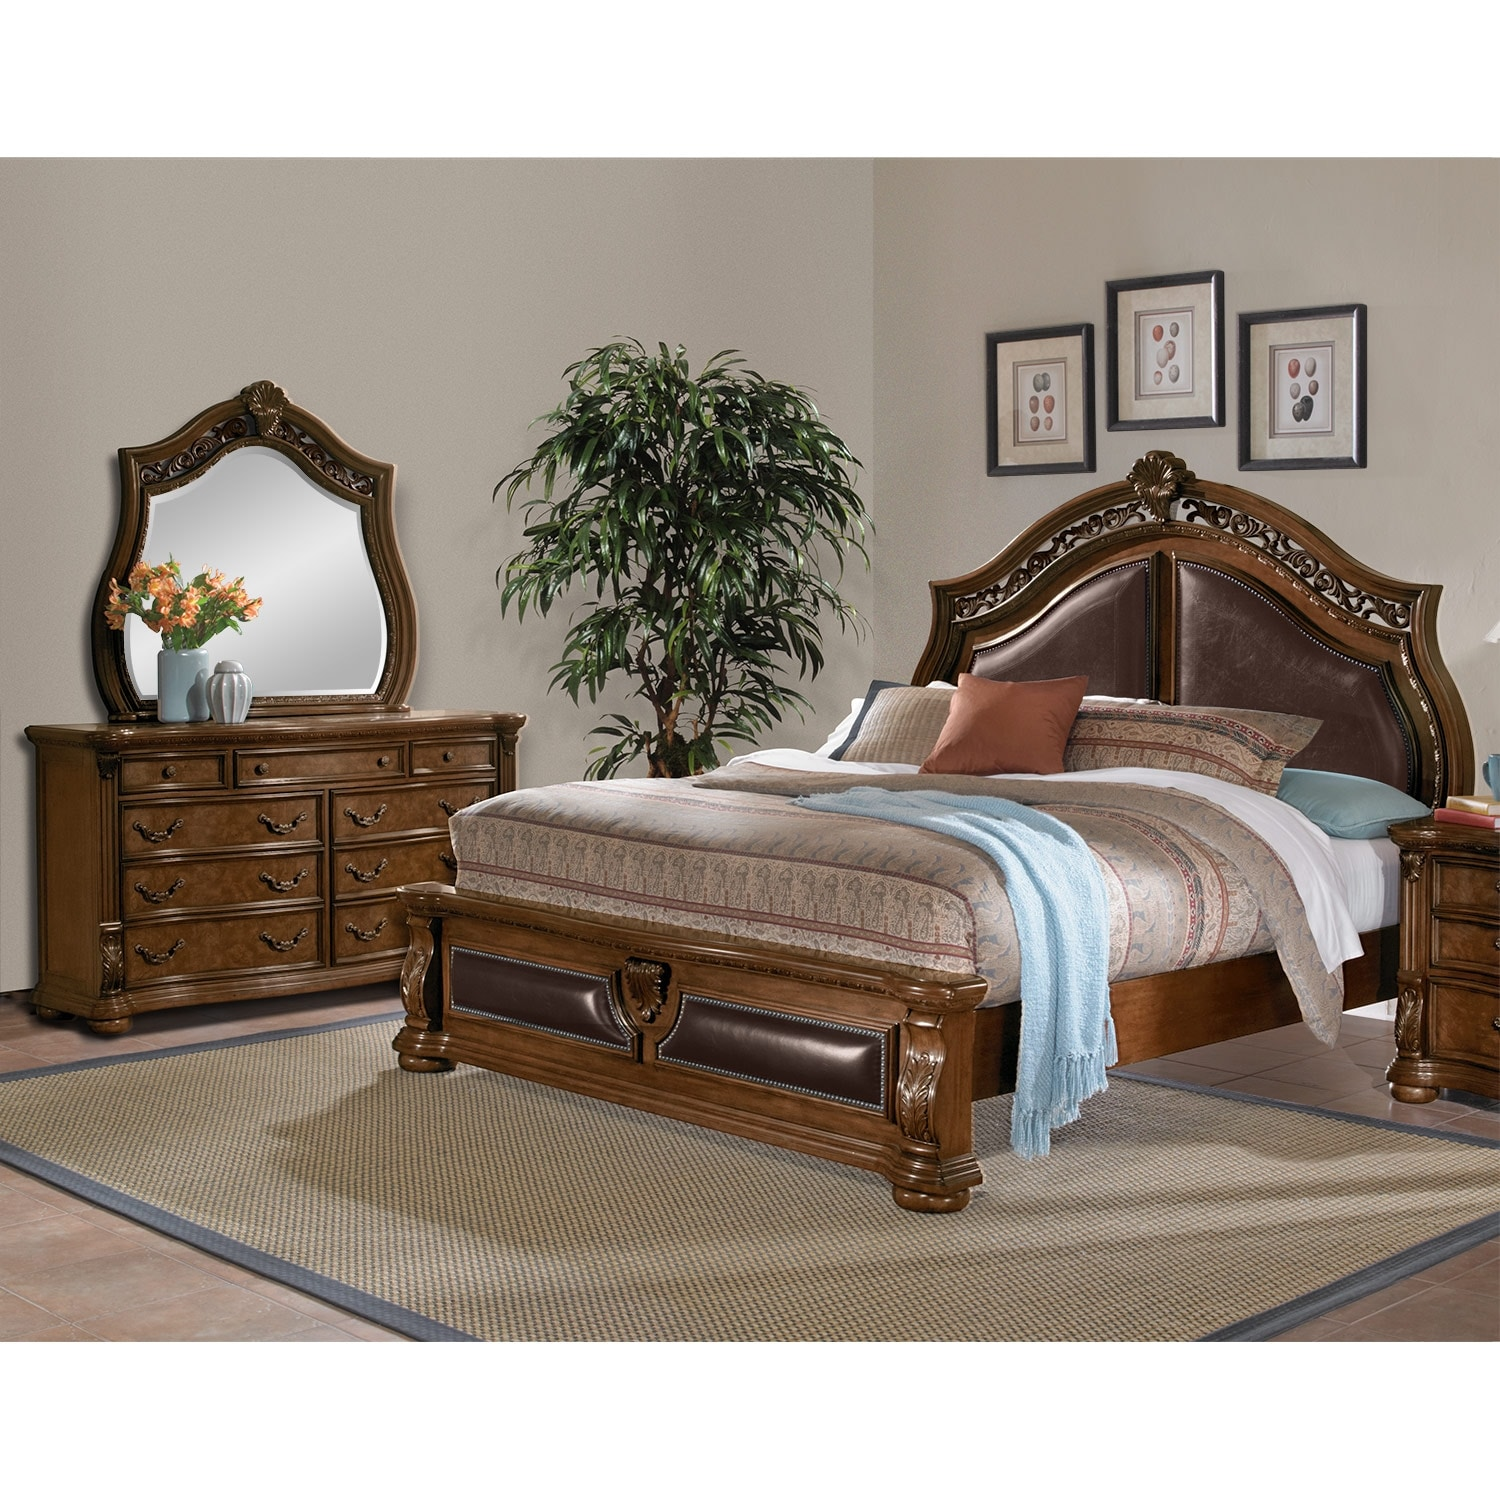 Morocco 5 piece king bedroom set pecan value city for King bed sets furniture